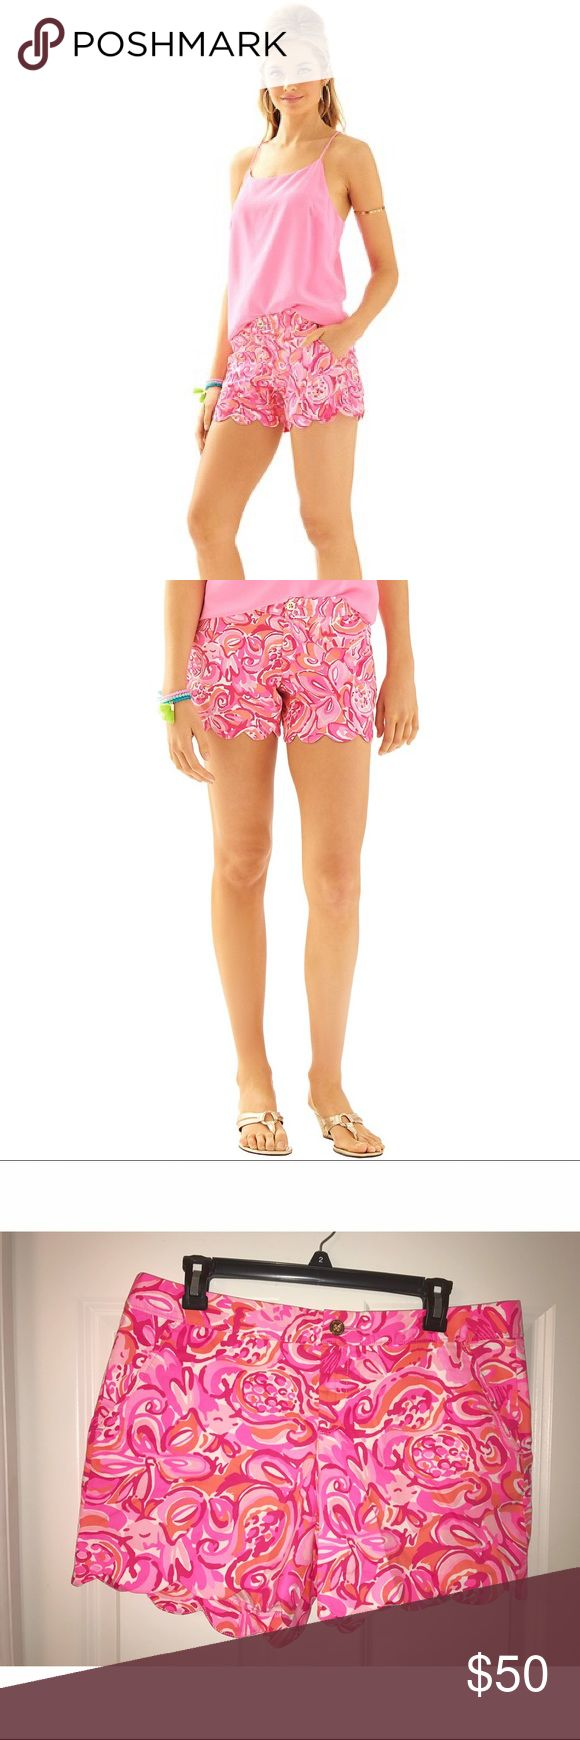 Lilly Pulitzer shorts 💞 Super cute Lilly Pulitzer Buttercup shorts that are brand new and with tags! Pink, orange and white pattern (Mango Salsa) with a scalloped hem. They will definitely add a much needed pop of color to any outfit ! Message if interested! 🌷 Lilly Pulitzer Shorts